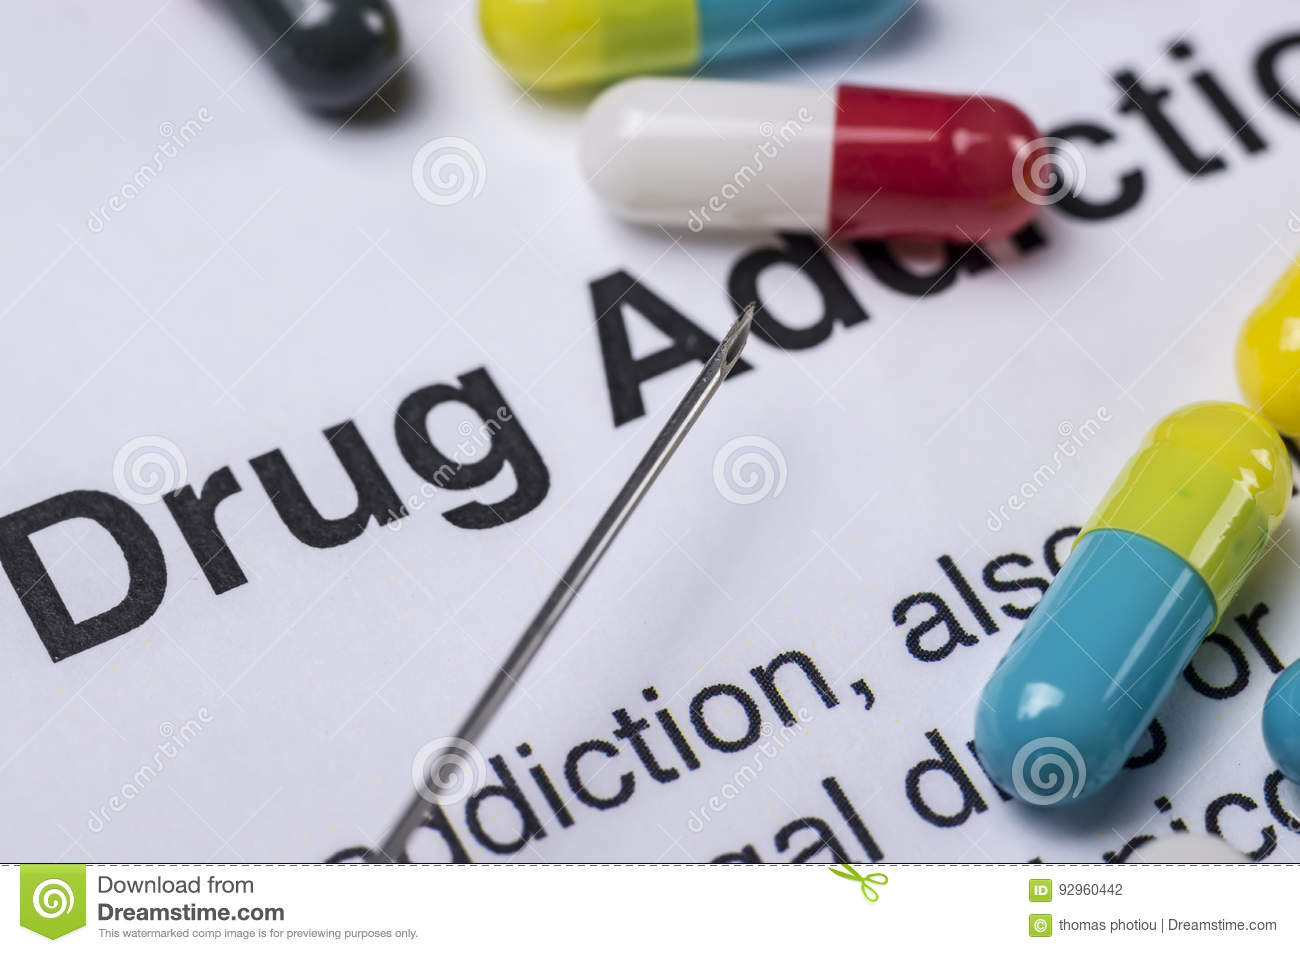 Drug addiction stock photo  Image of narcotic, hospital